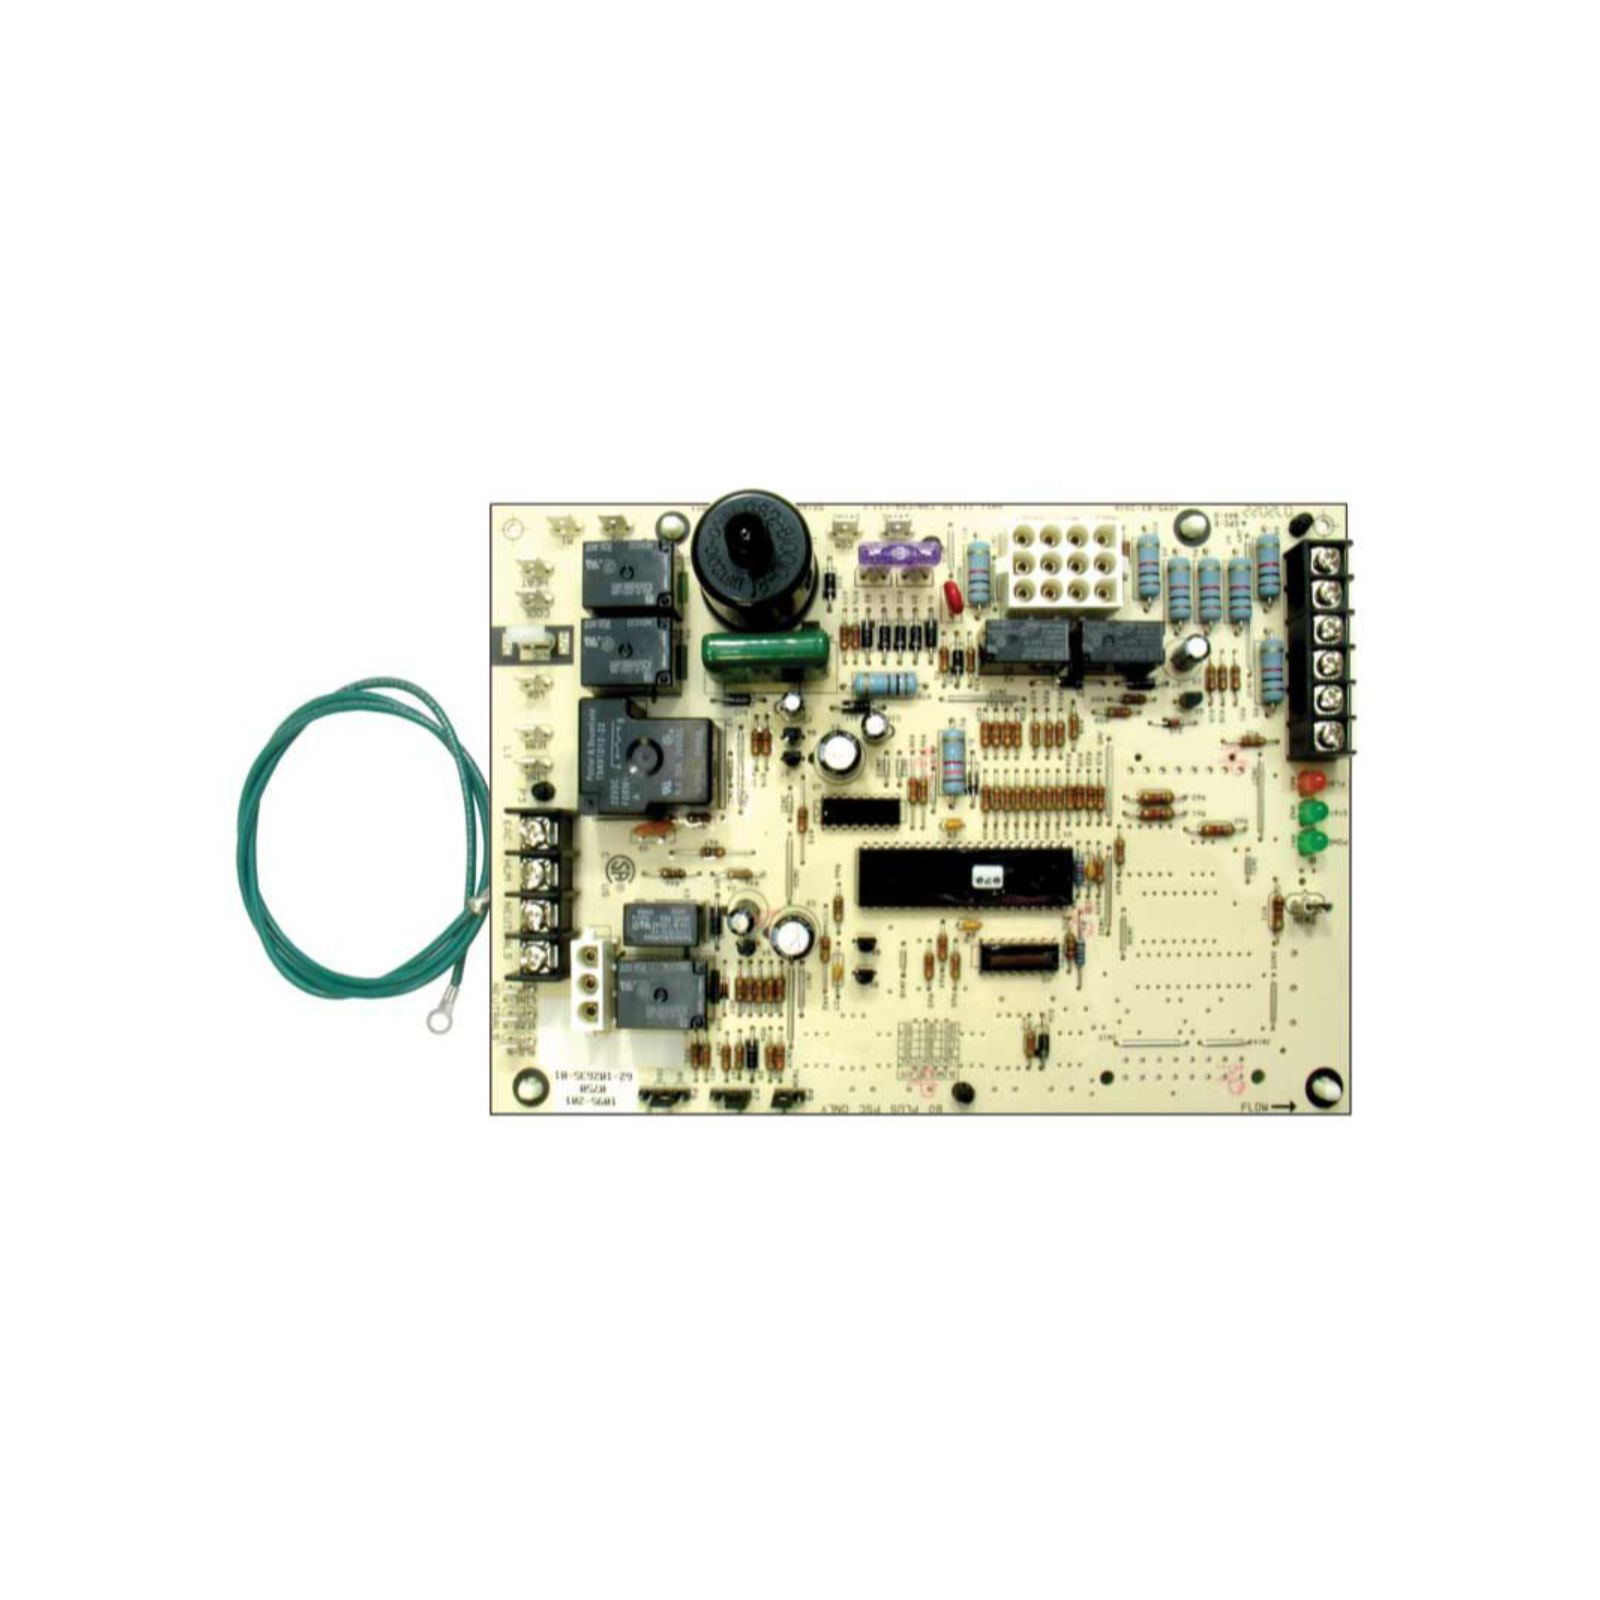 UTEC 62-102635-81 - Integrated Furnace Control Board (IFC)